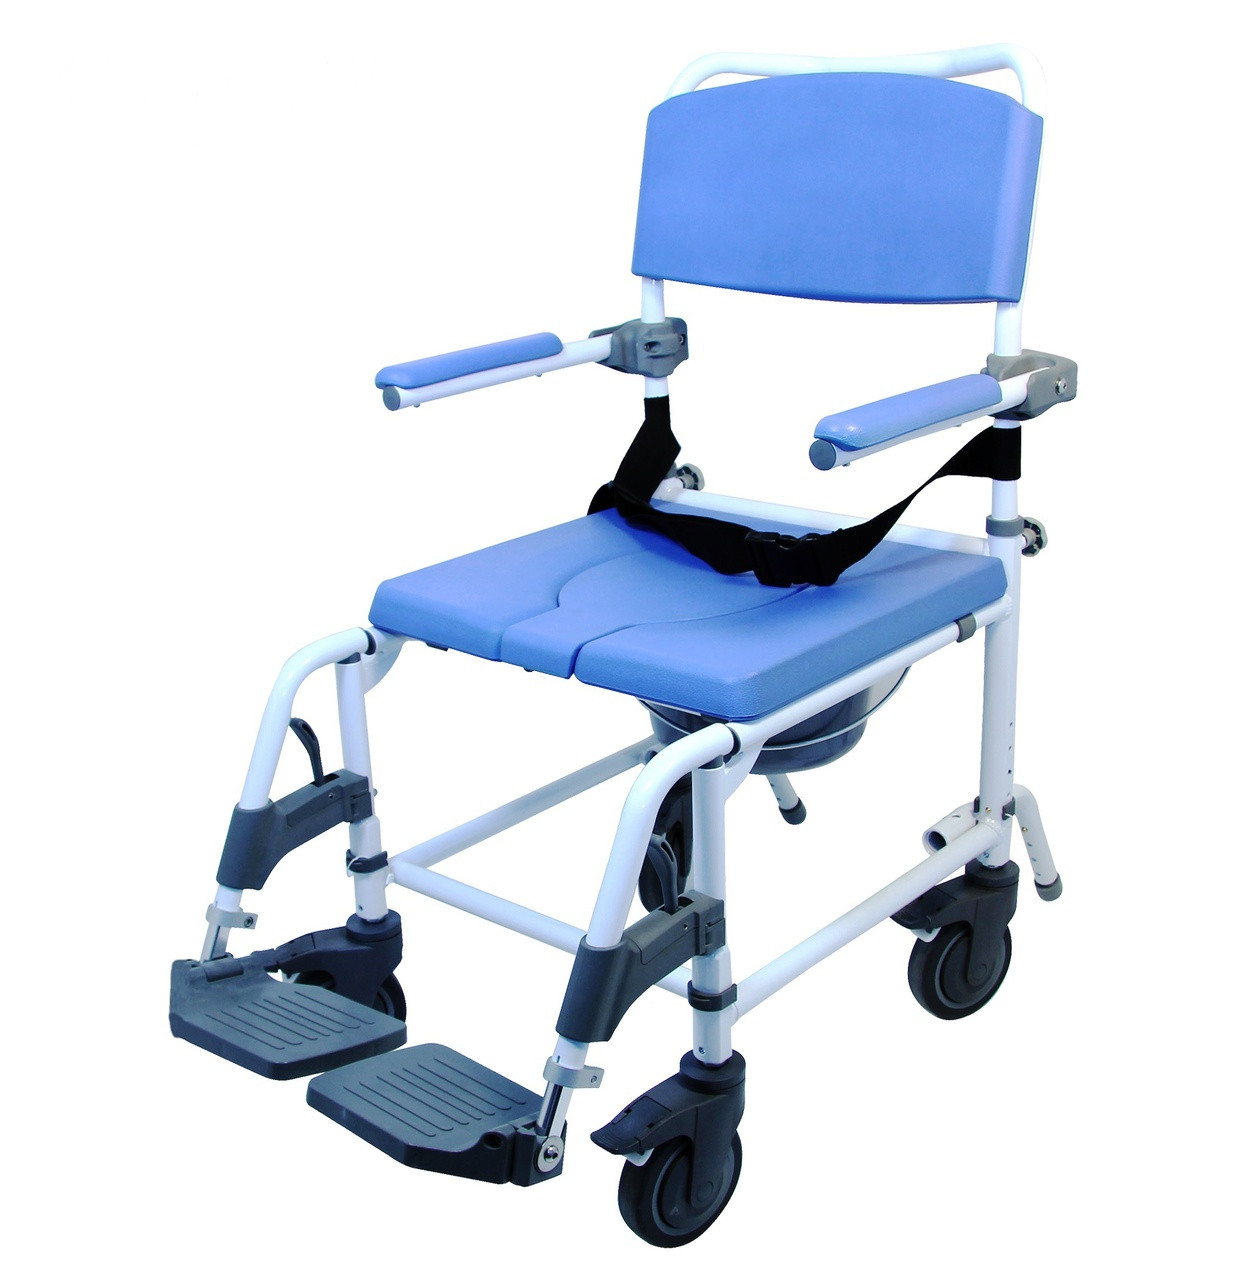 Shower Commode Chair. Best Basic Shower Commode Chair   CareProdx